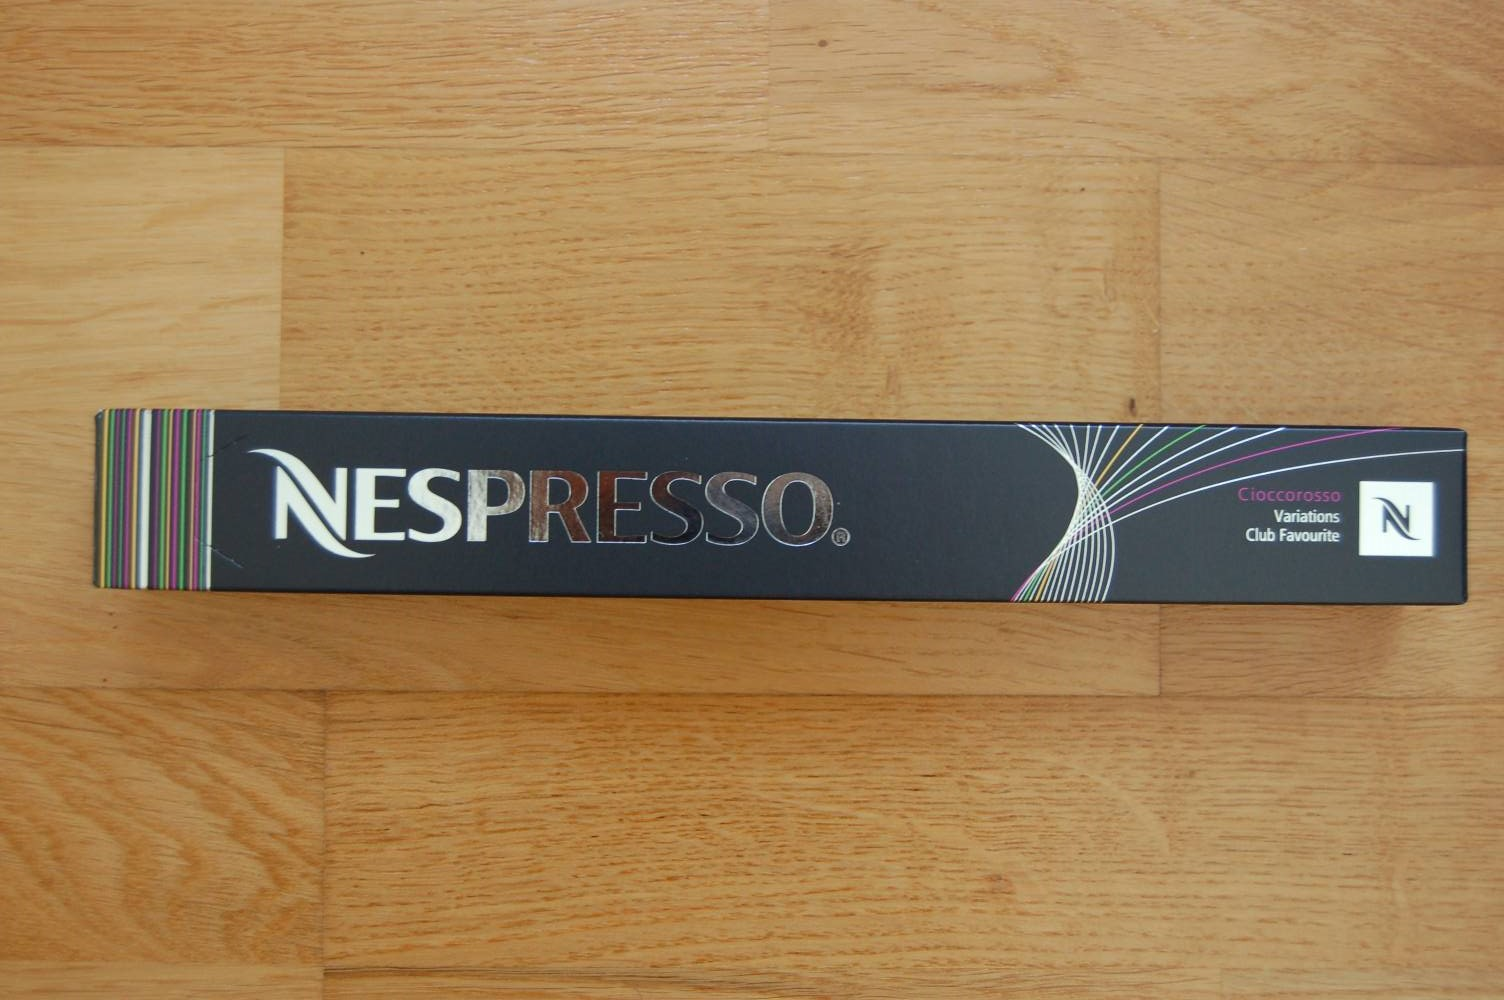 nespresso limited edition kapsel. Black Bedroom Furniture Sets. Home Design Ideas